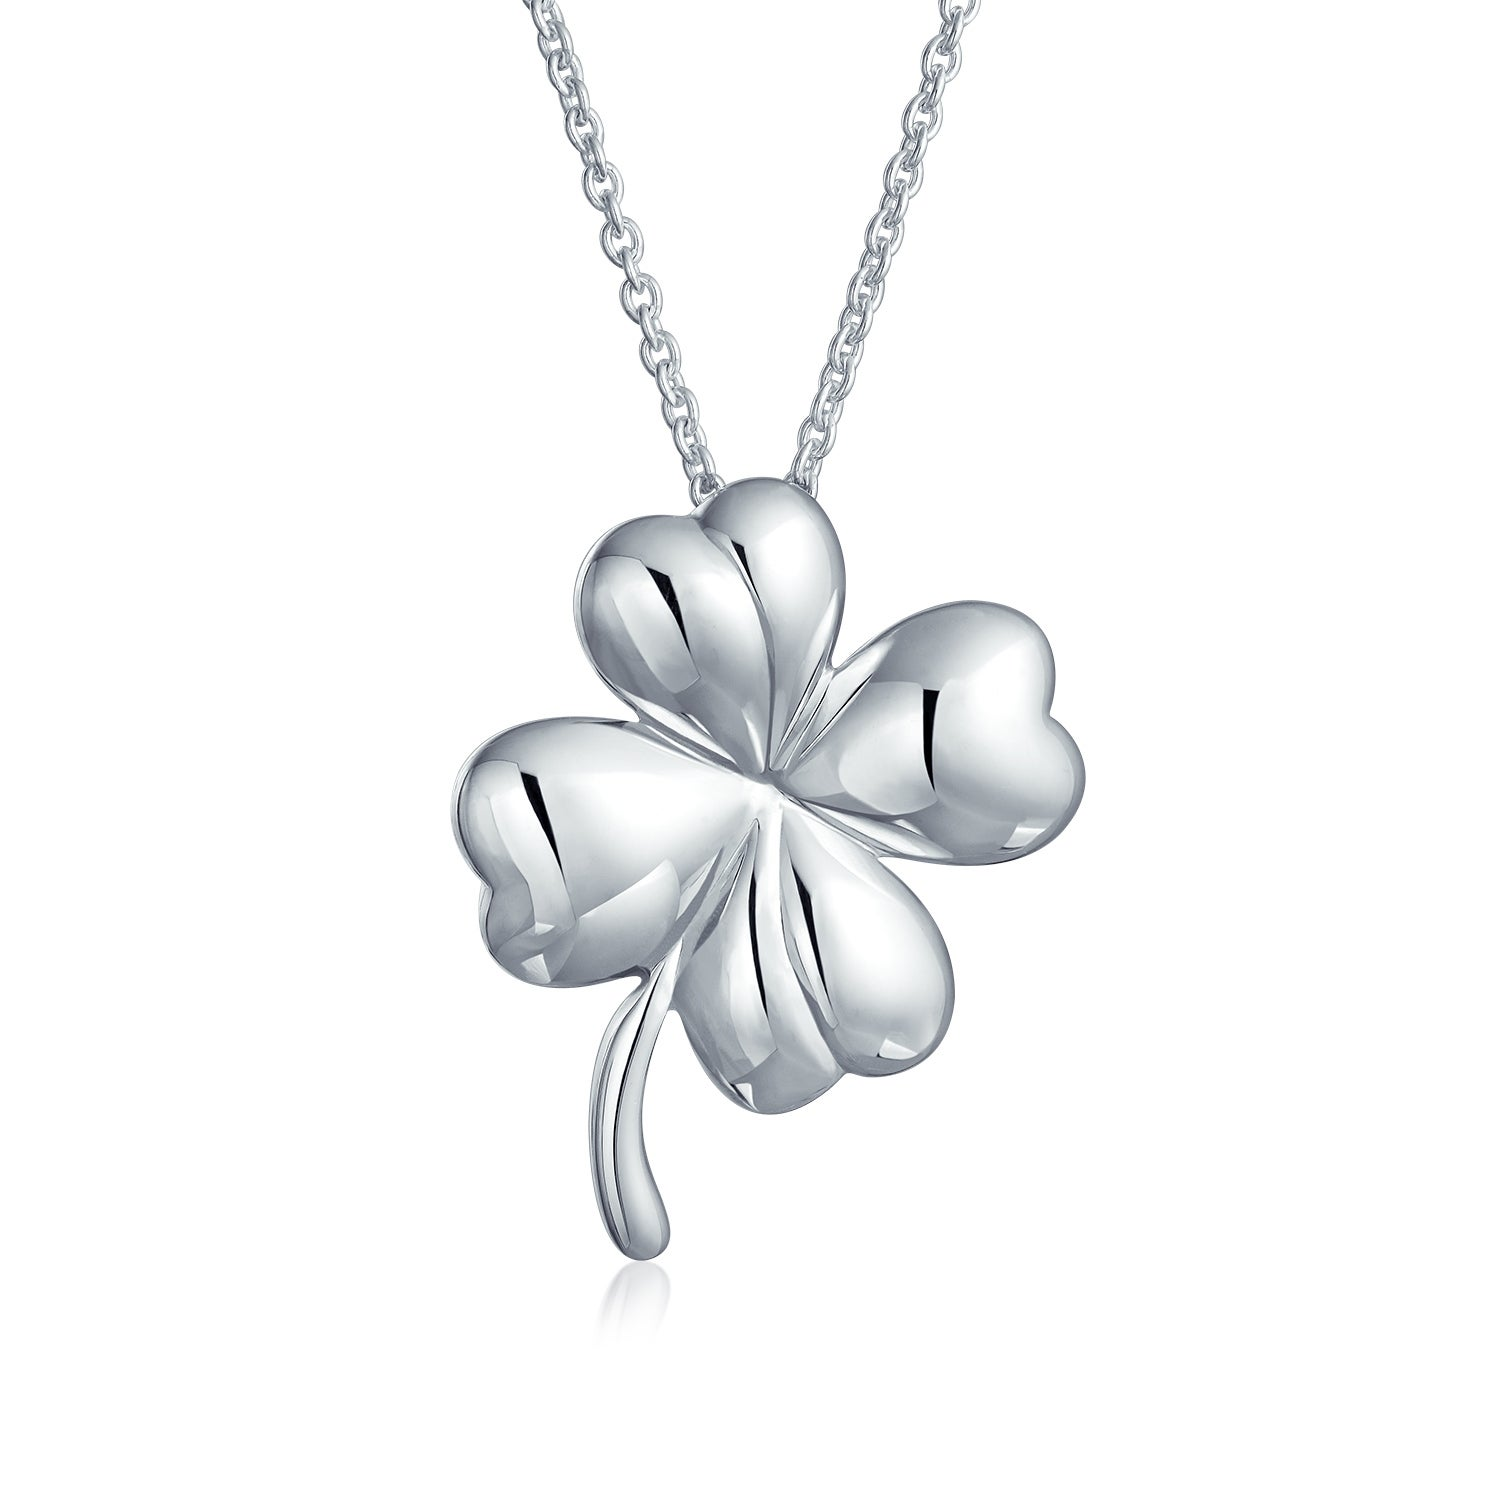 Shop Irish Shamrock Shape Lucky Charm Four Leaf Clover Pendant